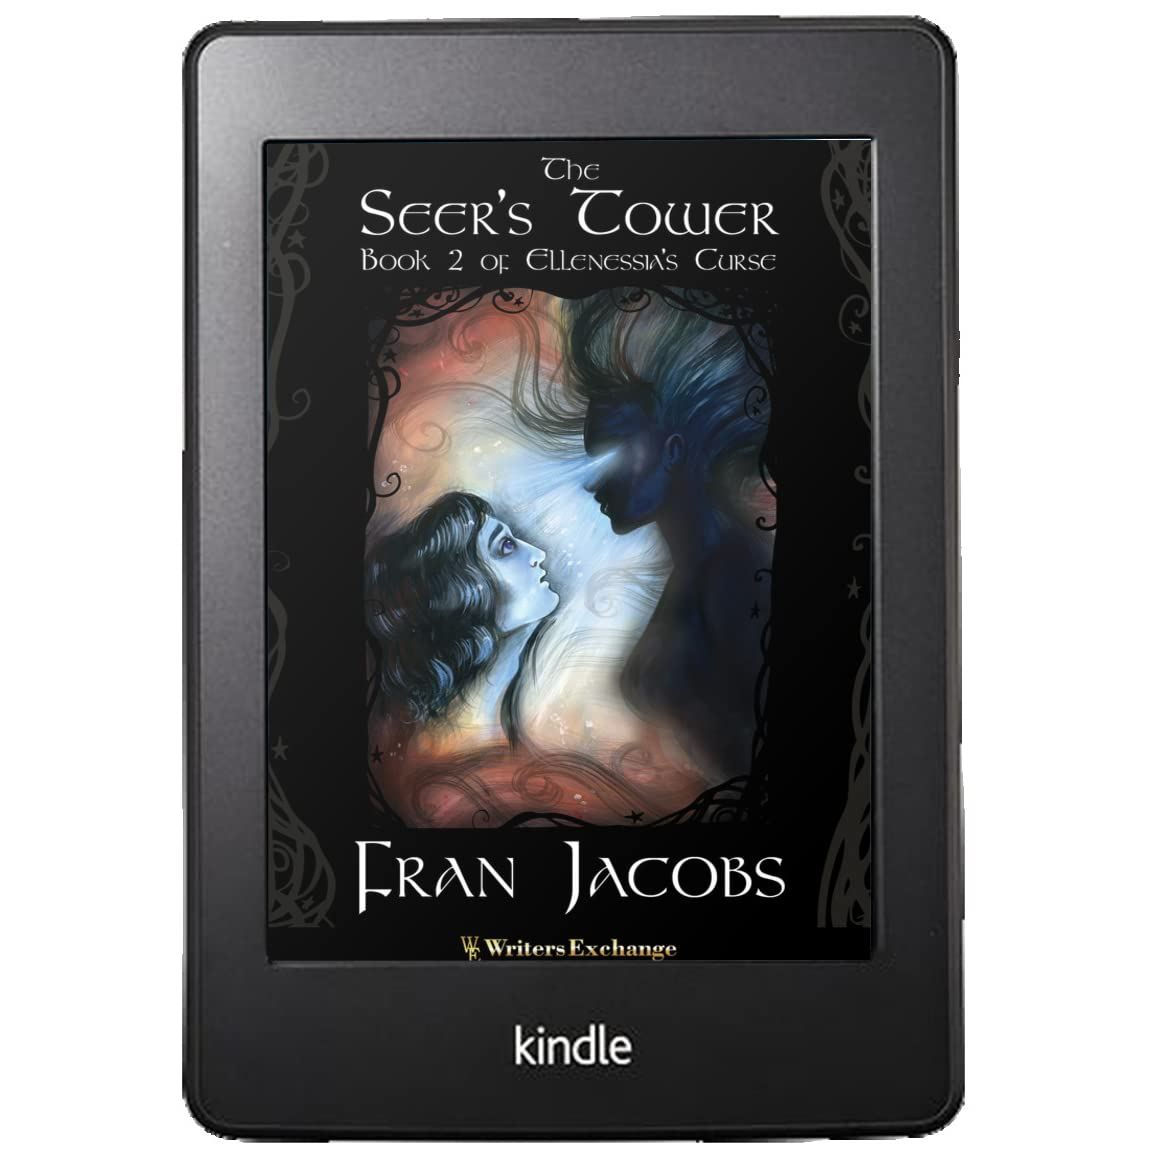 Ellenessia's Curse Book 1 - Part 1: Shadow Seer - Fiction - Fantasy, Fran Jacobs